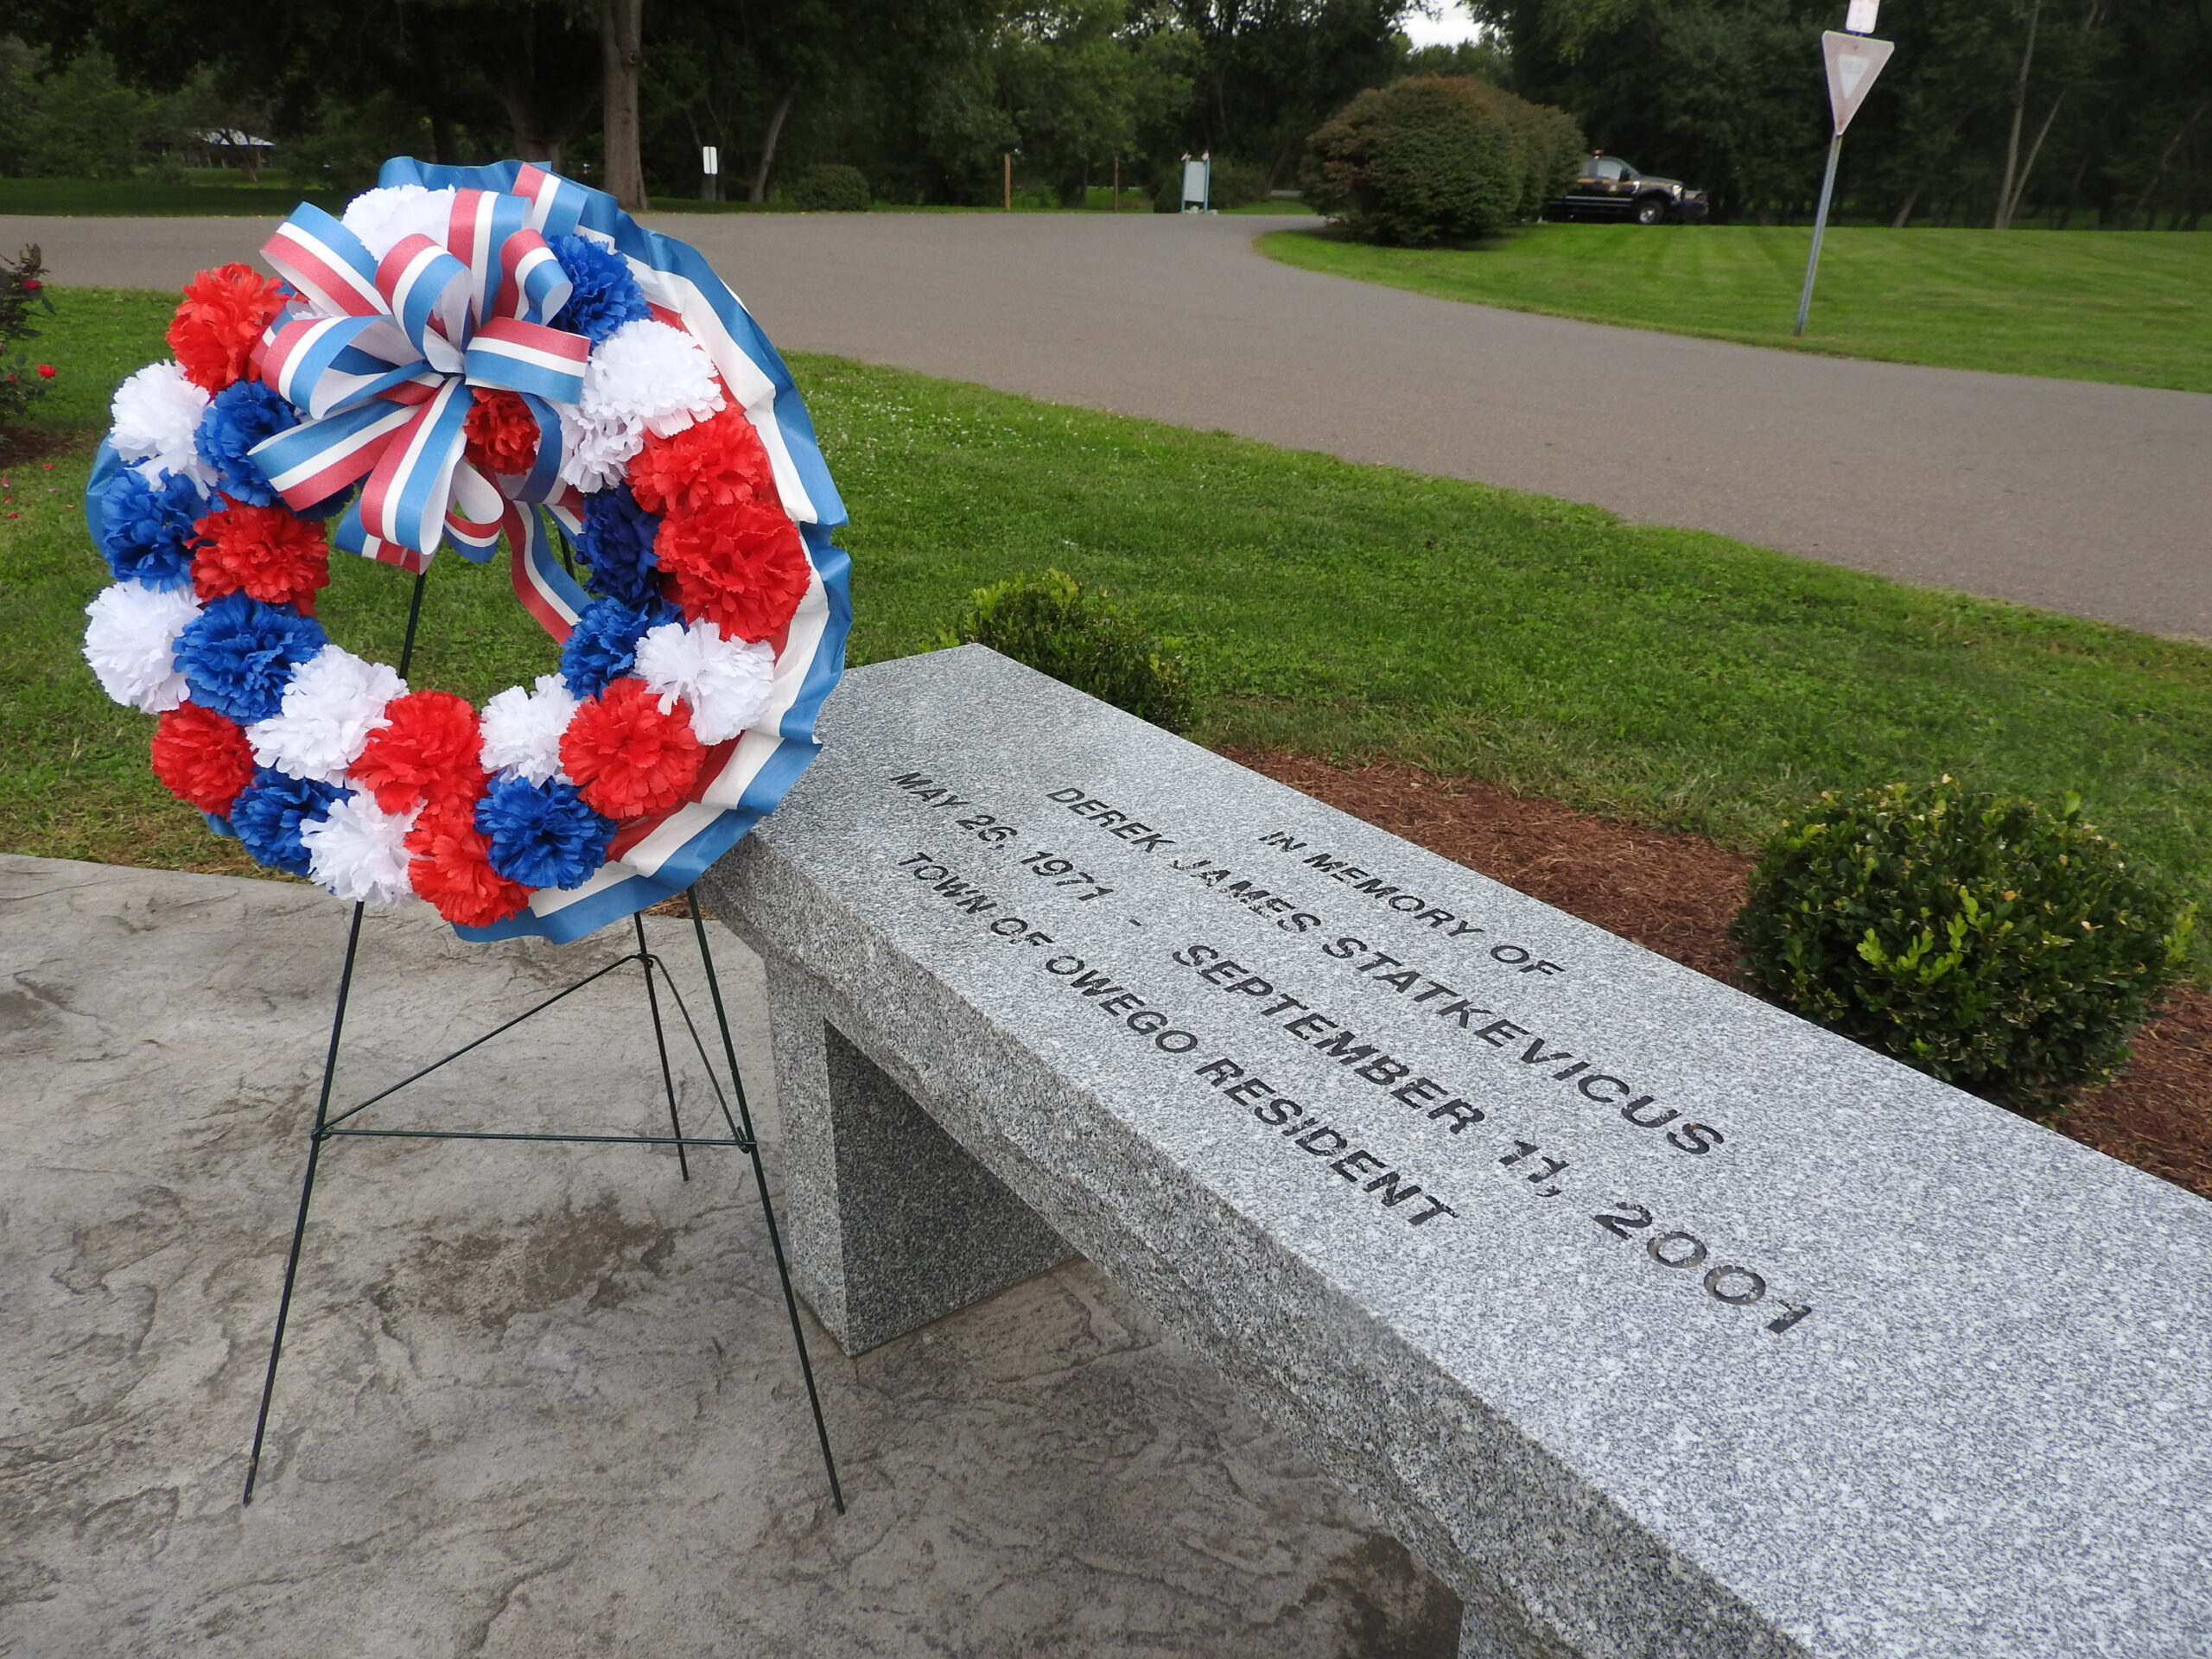 Ceremony pays tribute to those lost on 9/11